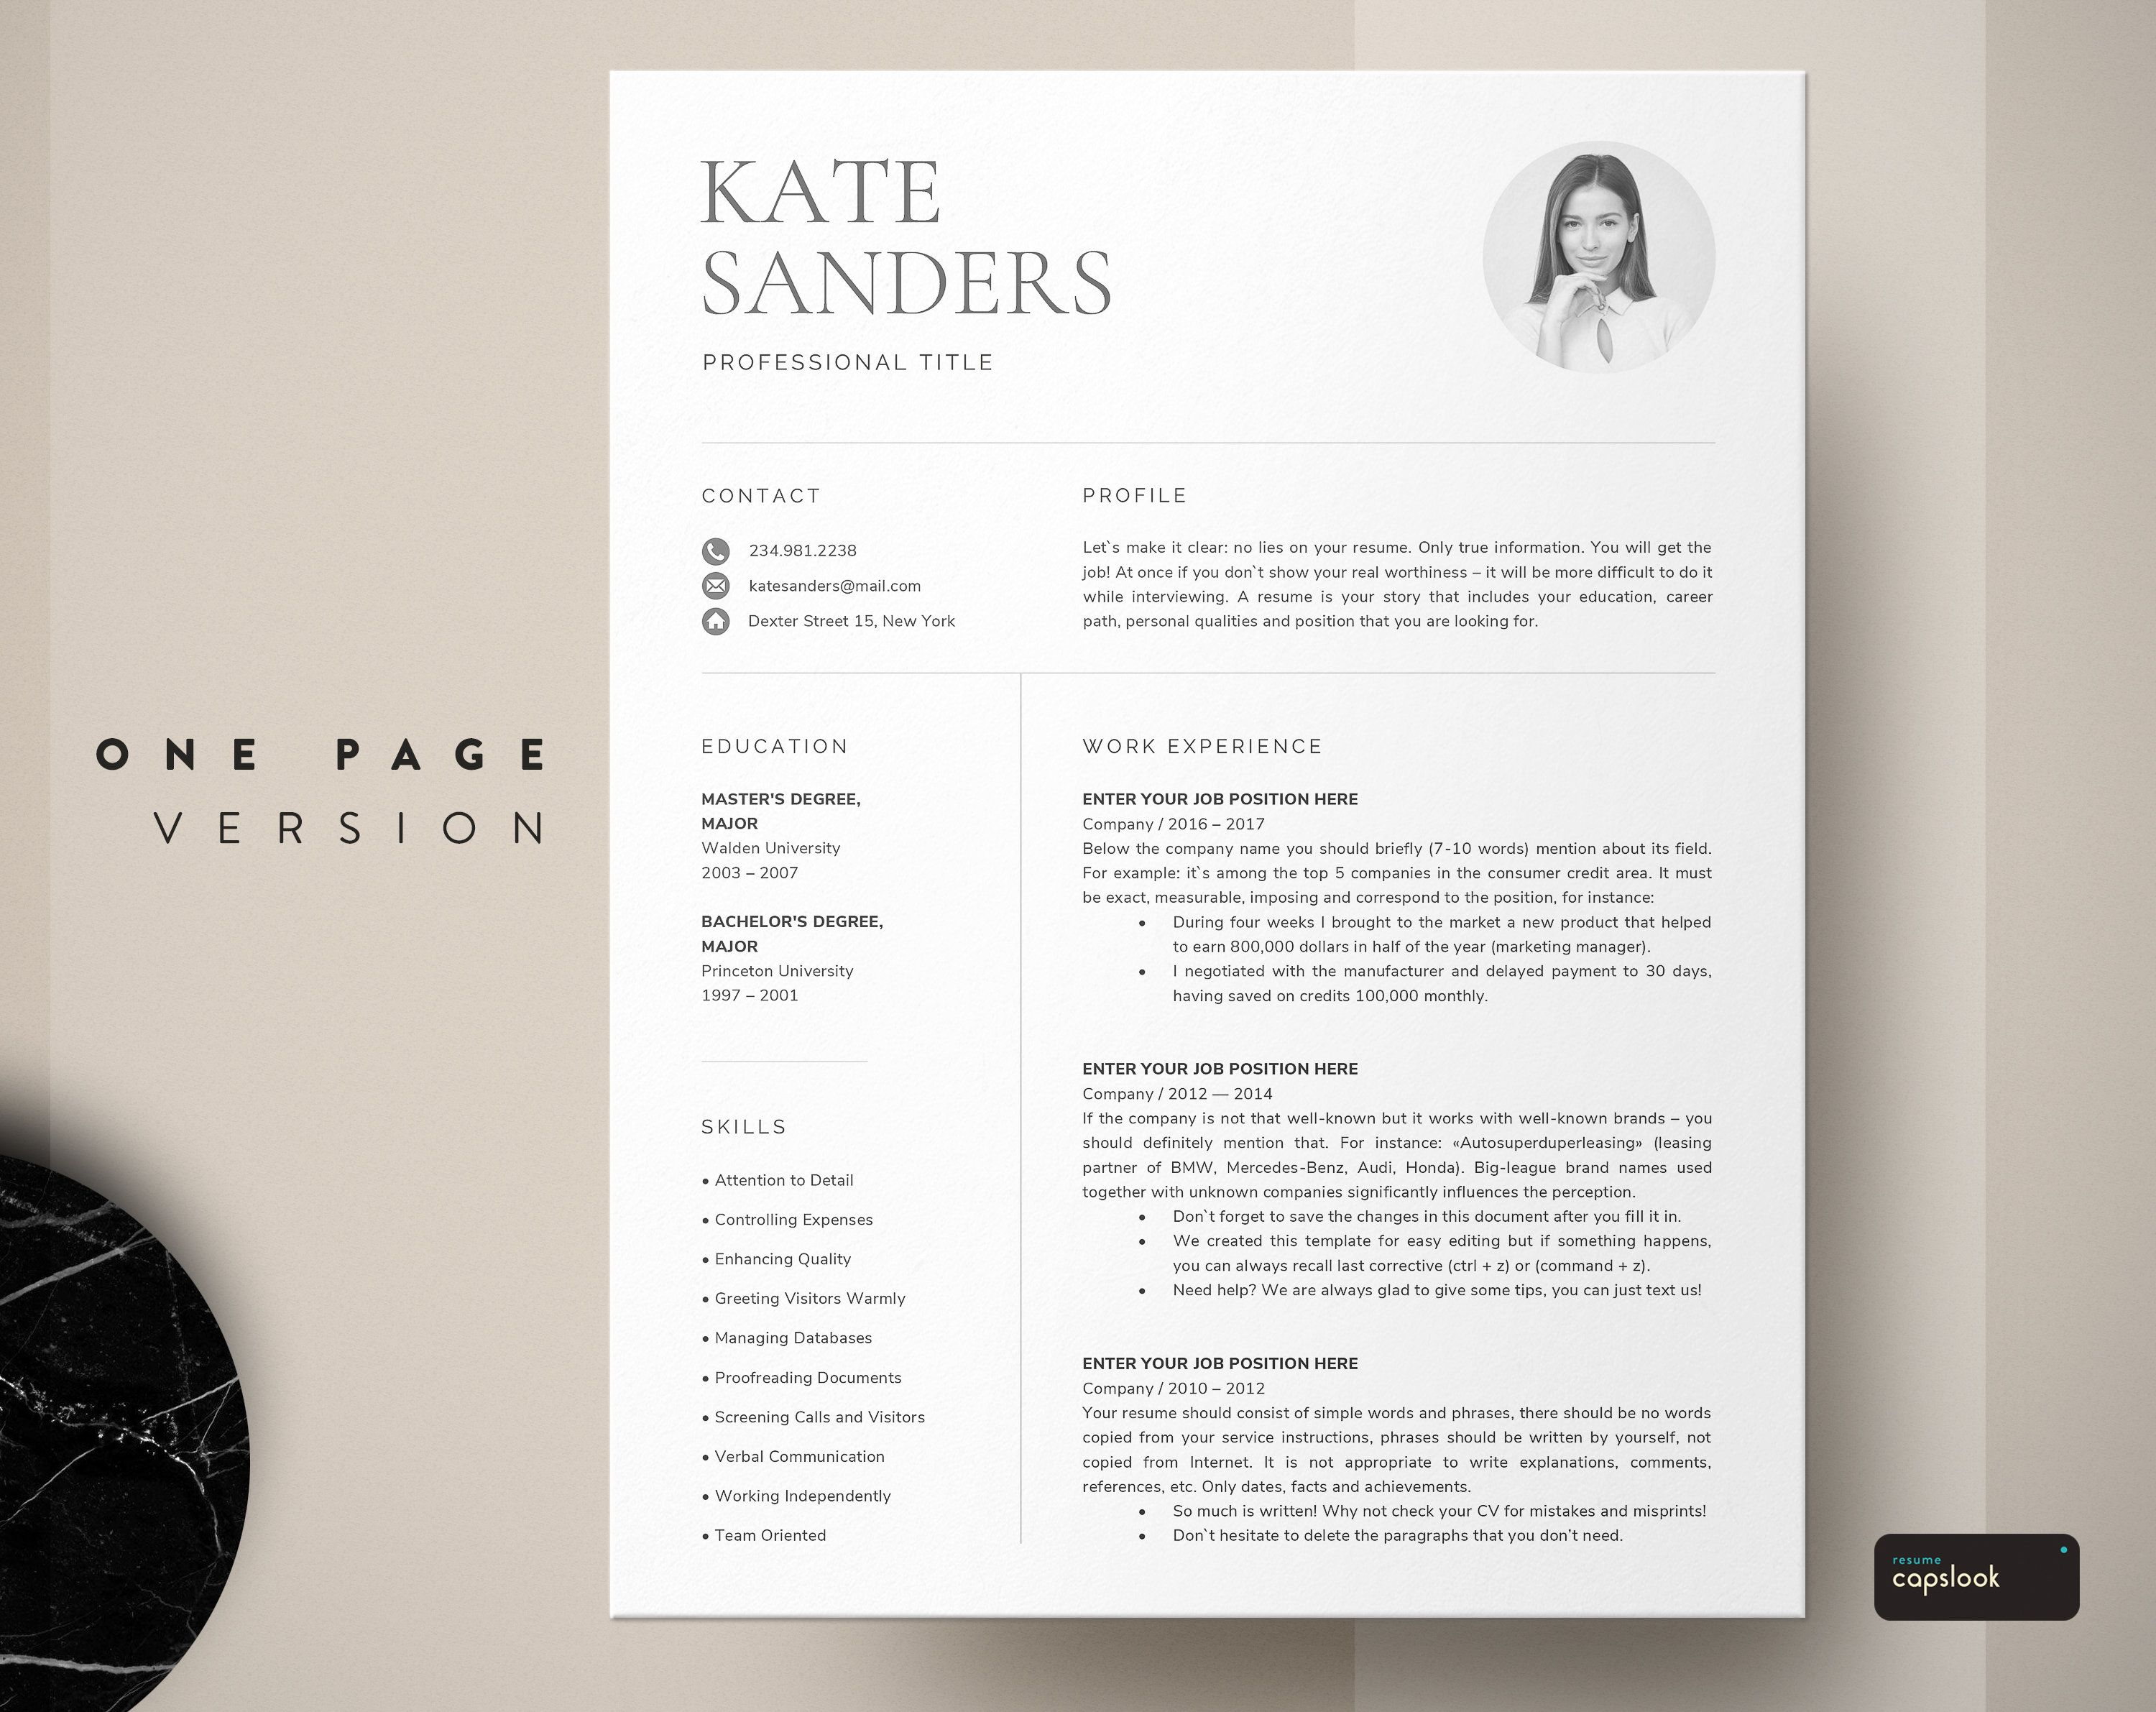 CV Template, Resume Template with Photo, Professional